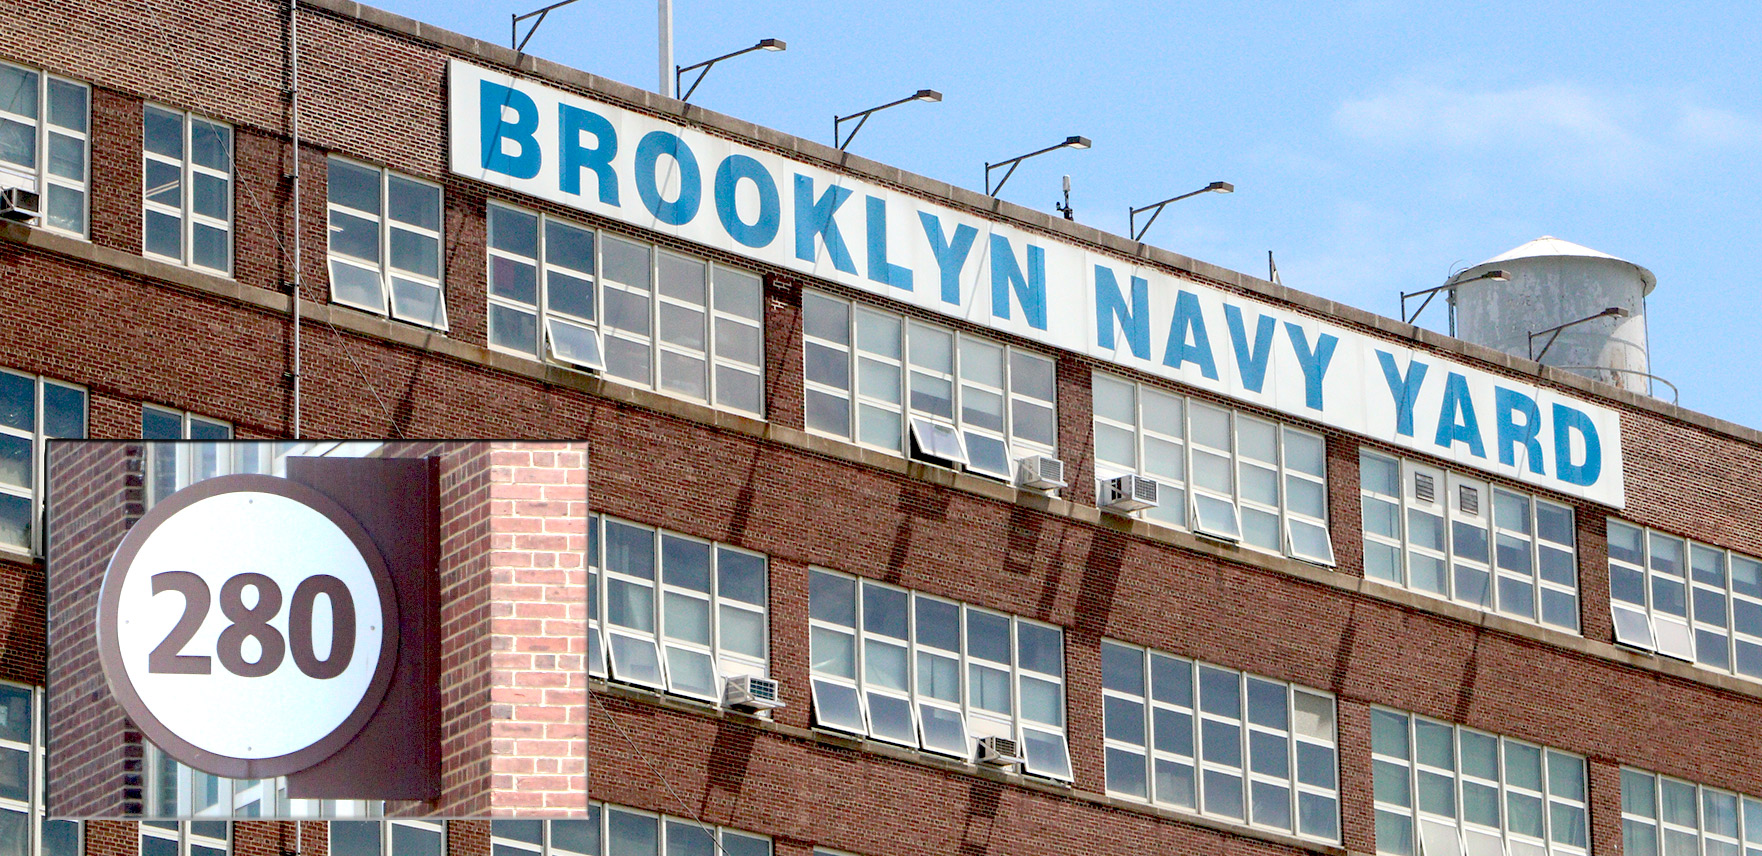 Scott Jordan Brooklyn Navy Yard Building 280